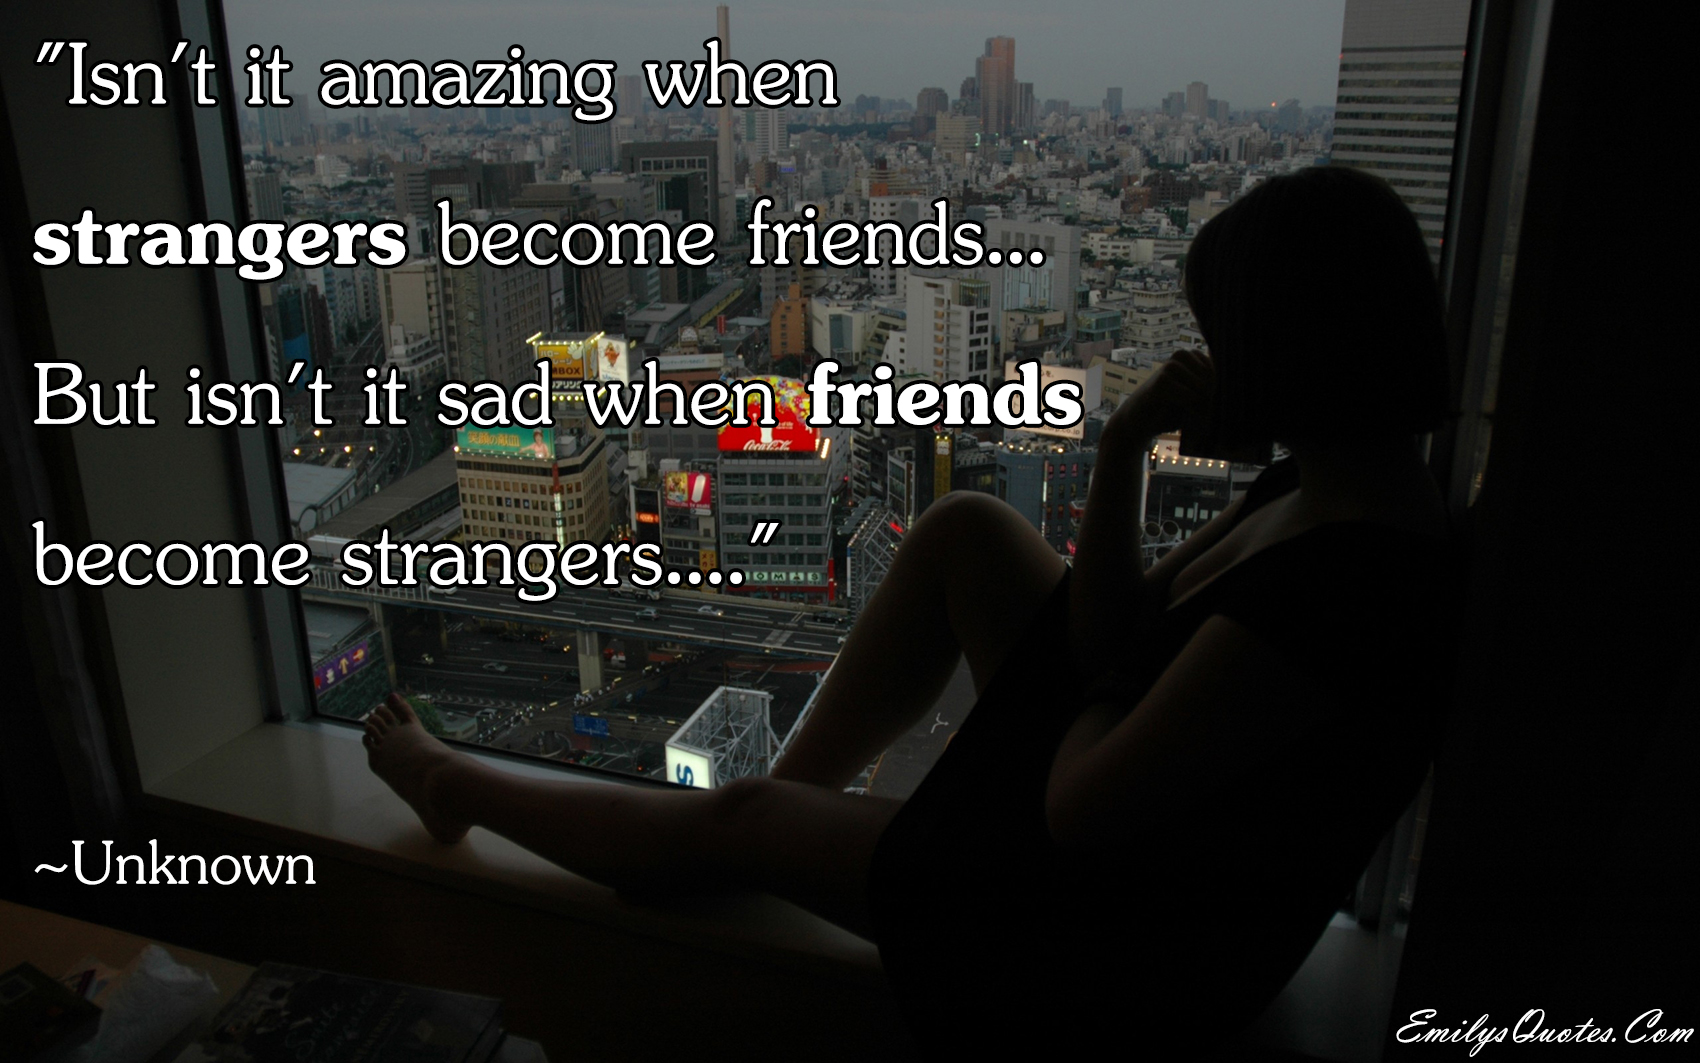 Popular Quotes About Friendship Isn't It Amazing When Strangers Become Friends… But Isn't It Sad